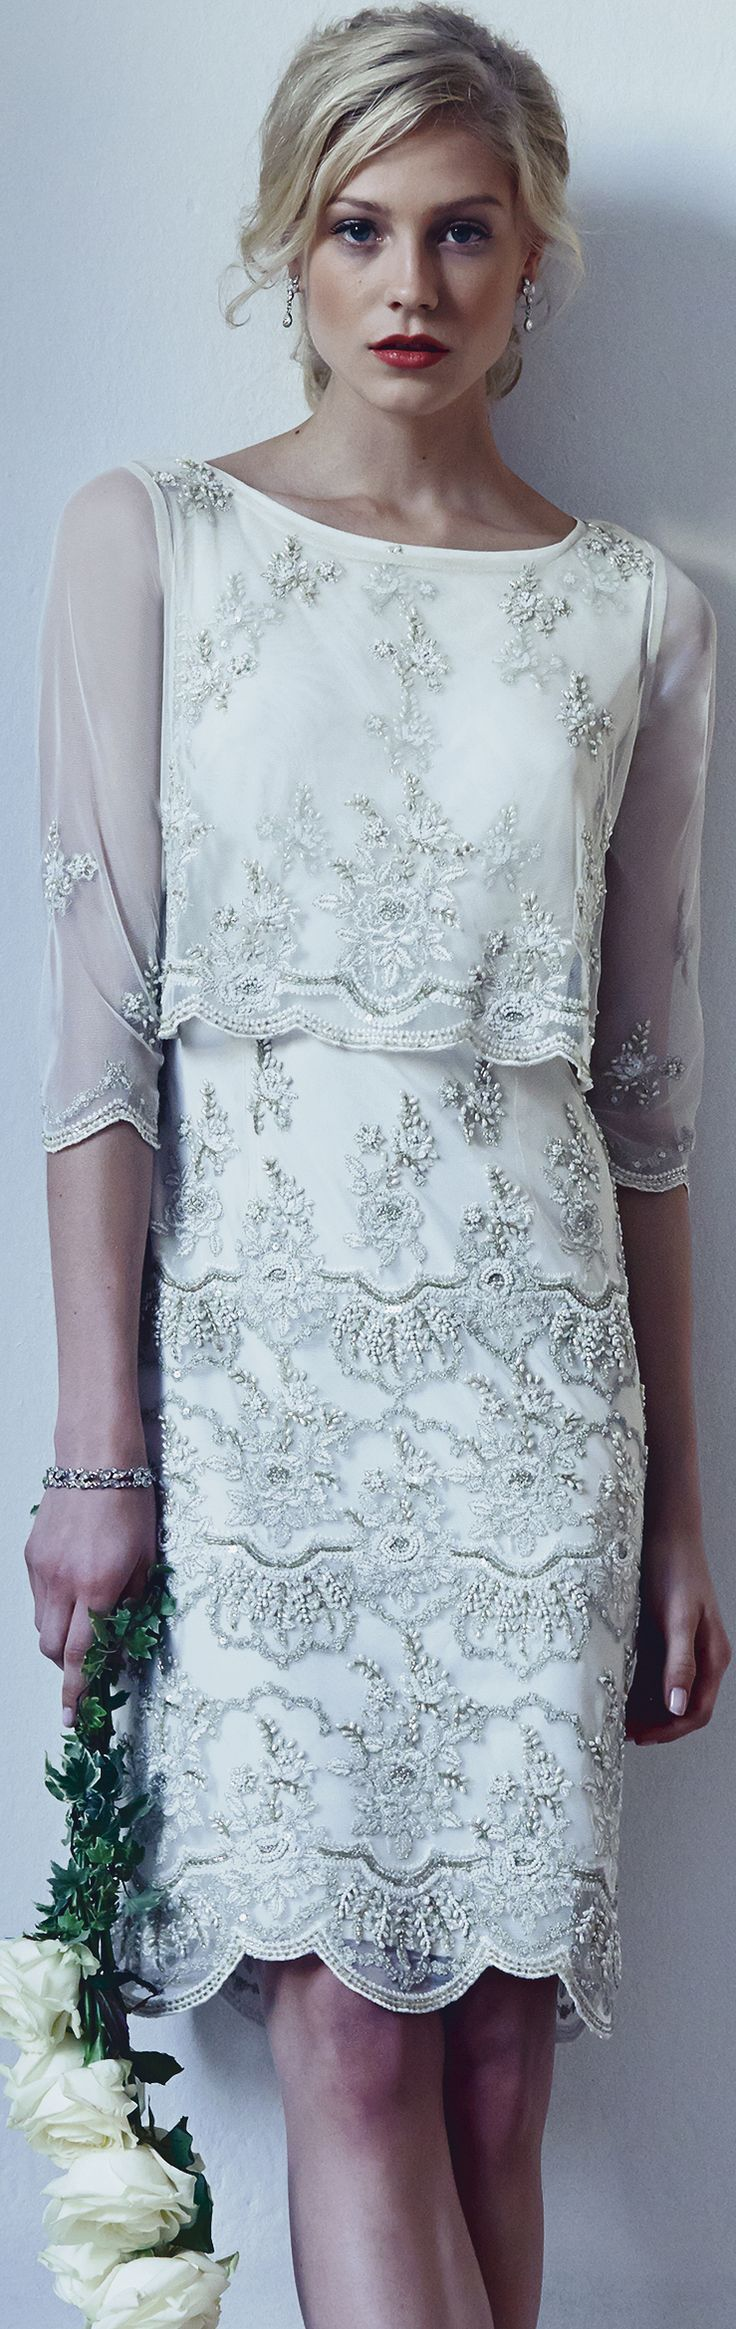 More wedding fashion tips for brides - updated article for older women: http://www.boomerinas.com/2011/12/27/wedding-dresses-for-older-brides-boomers-over-40/